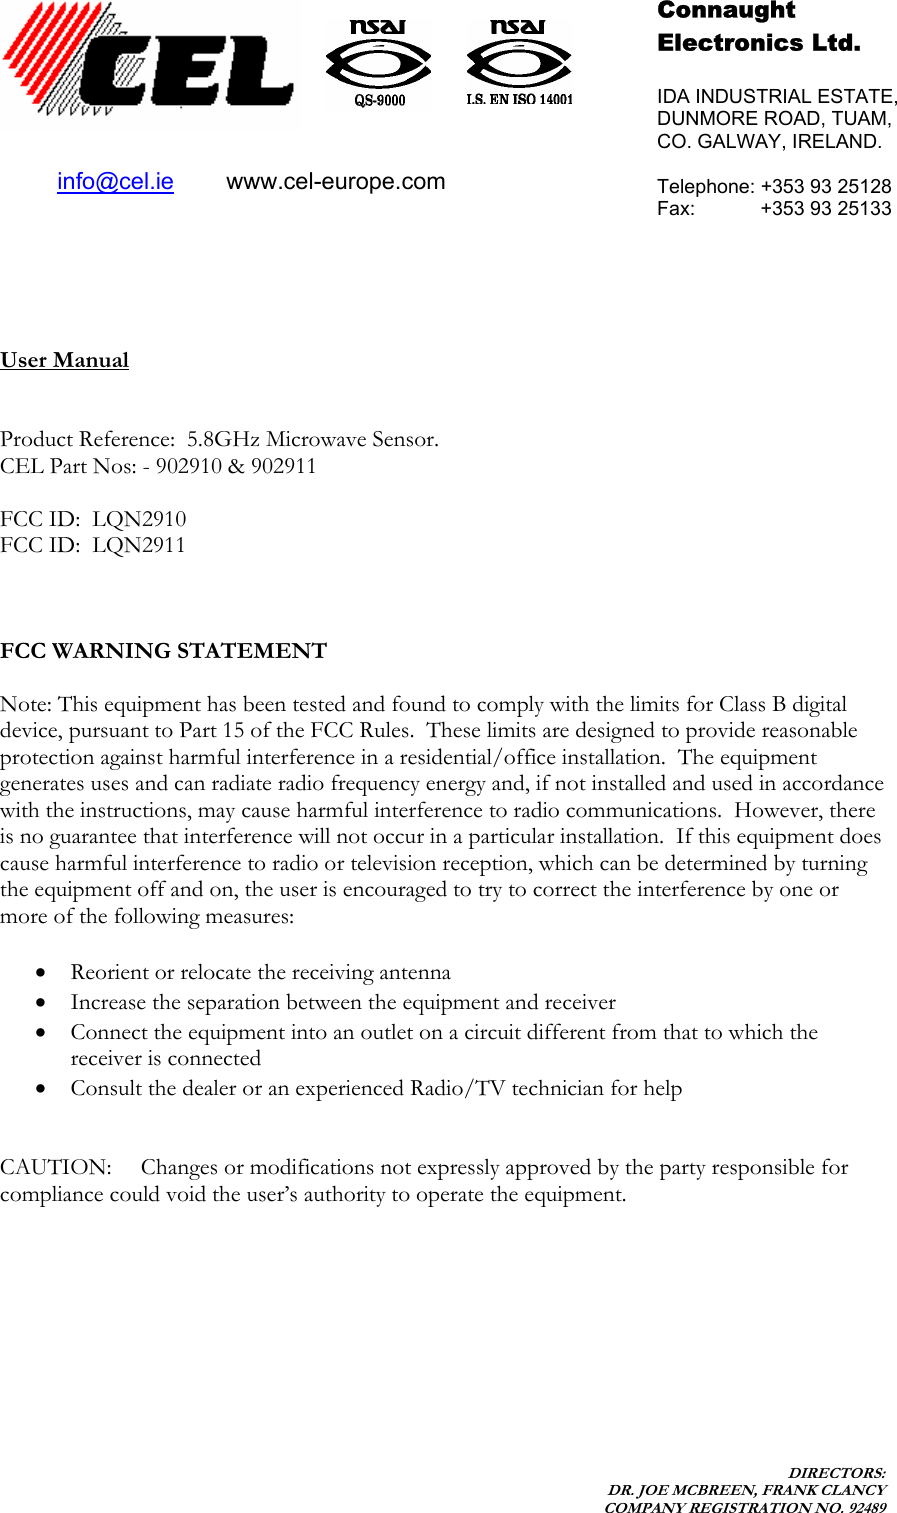 DIRECTORS: DR. JOE MCBREEN, FRANK CLANCY COMPANY REGISTRATION NO. 92489           User Manual   Product Reference:  5.8GHz Microwave Sensor.   CEL Part Nos: - 902910 & 902911  FCC ID:  LQN2910  FCC ID:  LQN2911    FCC WARNING STATEMENT  Note: This equipment has been tested and found to comply with the limits for Class B digital device, pursuant to Part 15 of the FCC Rules.  These limits are designed to provide reasonable protection against harmful interference in a residential/office installation.  The equipment generates uses and can radiate radio frequency energy and, if not installed and used in accordance with the instructions, may cause harmful interference to radio communications.  However, there is no guarantee that interference will not occur in a particular installation.  If this equipment does cause harmful interference to radio or television reception, which can be determined by turning the equipment off and on, the user is encouraged to try to correct the interference by one or more of the following measures:  • Reorient or relocate the receiving antenna • Increase the separation between the equipment and receiver • Connect the equipment into an outlet on a circuit different from that to which the receiver is connected • Consult the dealer or an experienced Radio/TV technician for help   CAUTION:  Changes or modifications not expressly approved by the party responsible for compliance could void the user's authority to operate the equipment.     Connaught  Electronics Ltd.  IDA INDUSTRIAL ESTATE, DUNMORE ROAD, TUAM, CO. GALWAY, IRELAND.  Telephone: +353 93 25128 Fax:            +353 93 25133  info@cel.ie        www.cel-europe.com